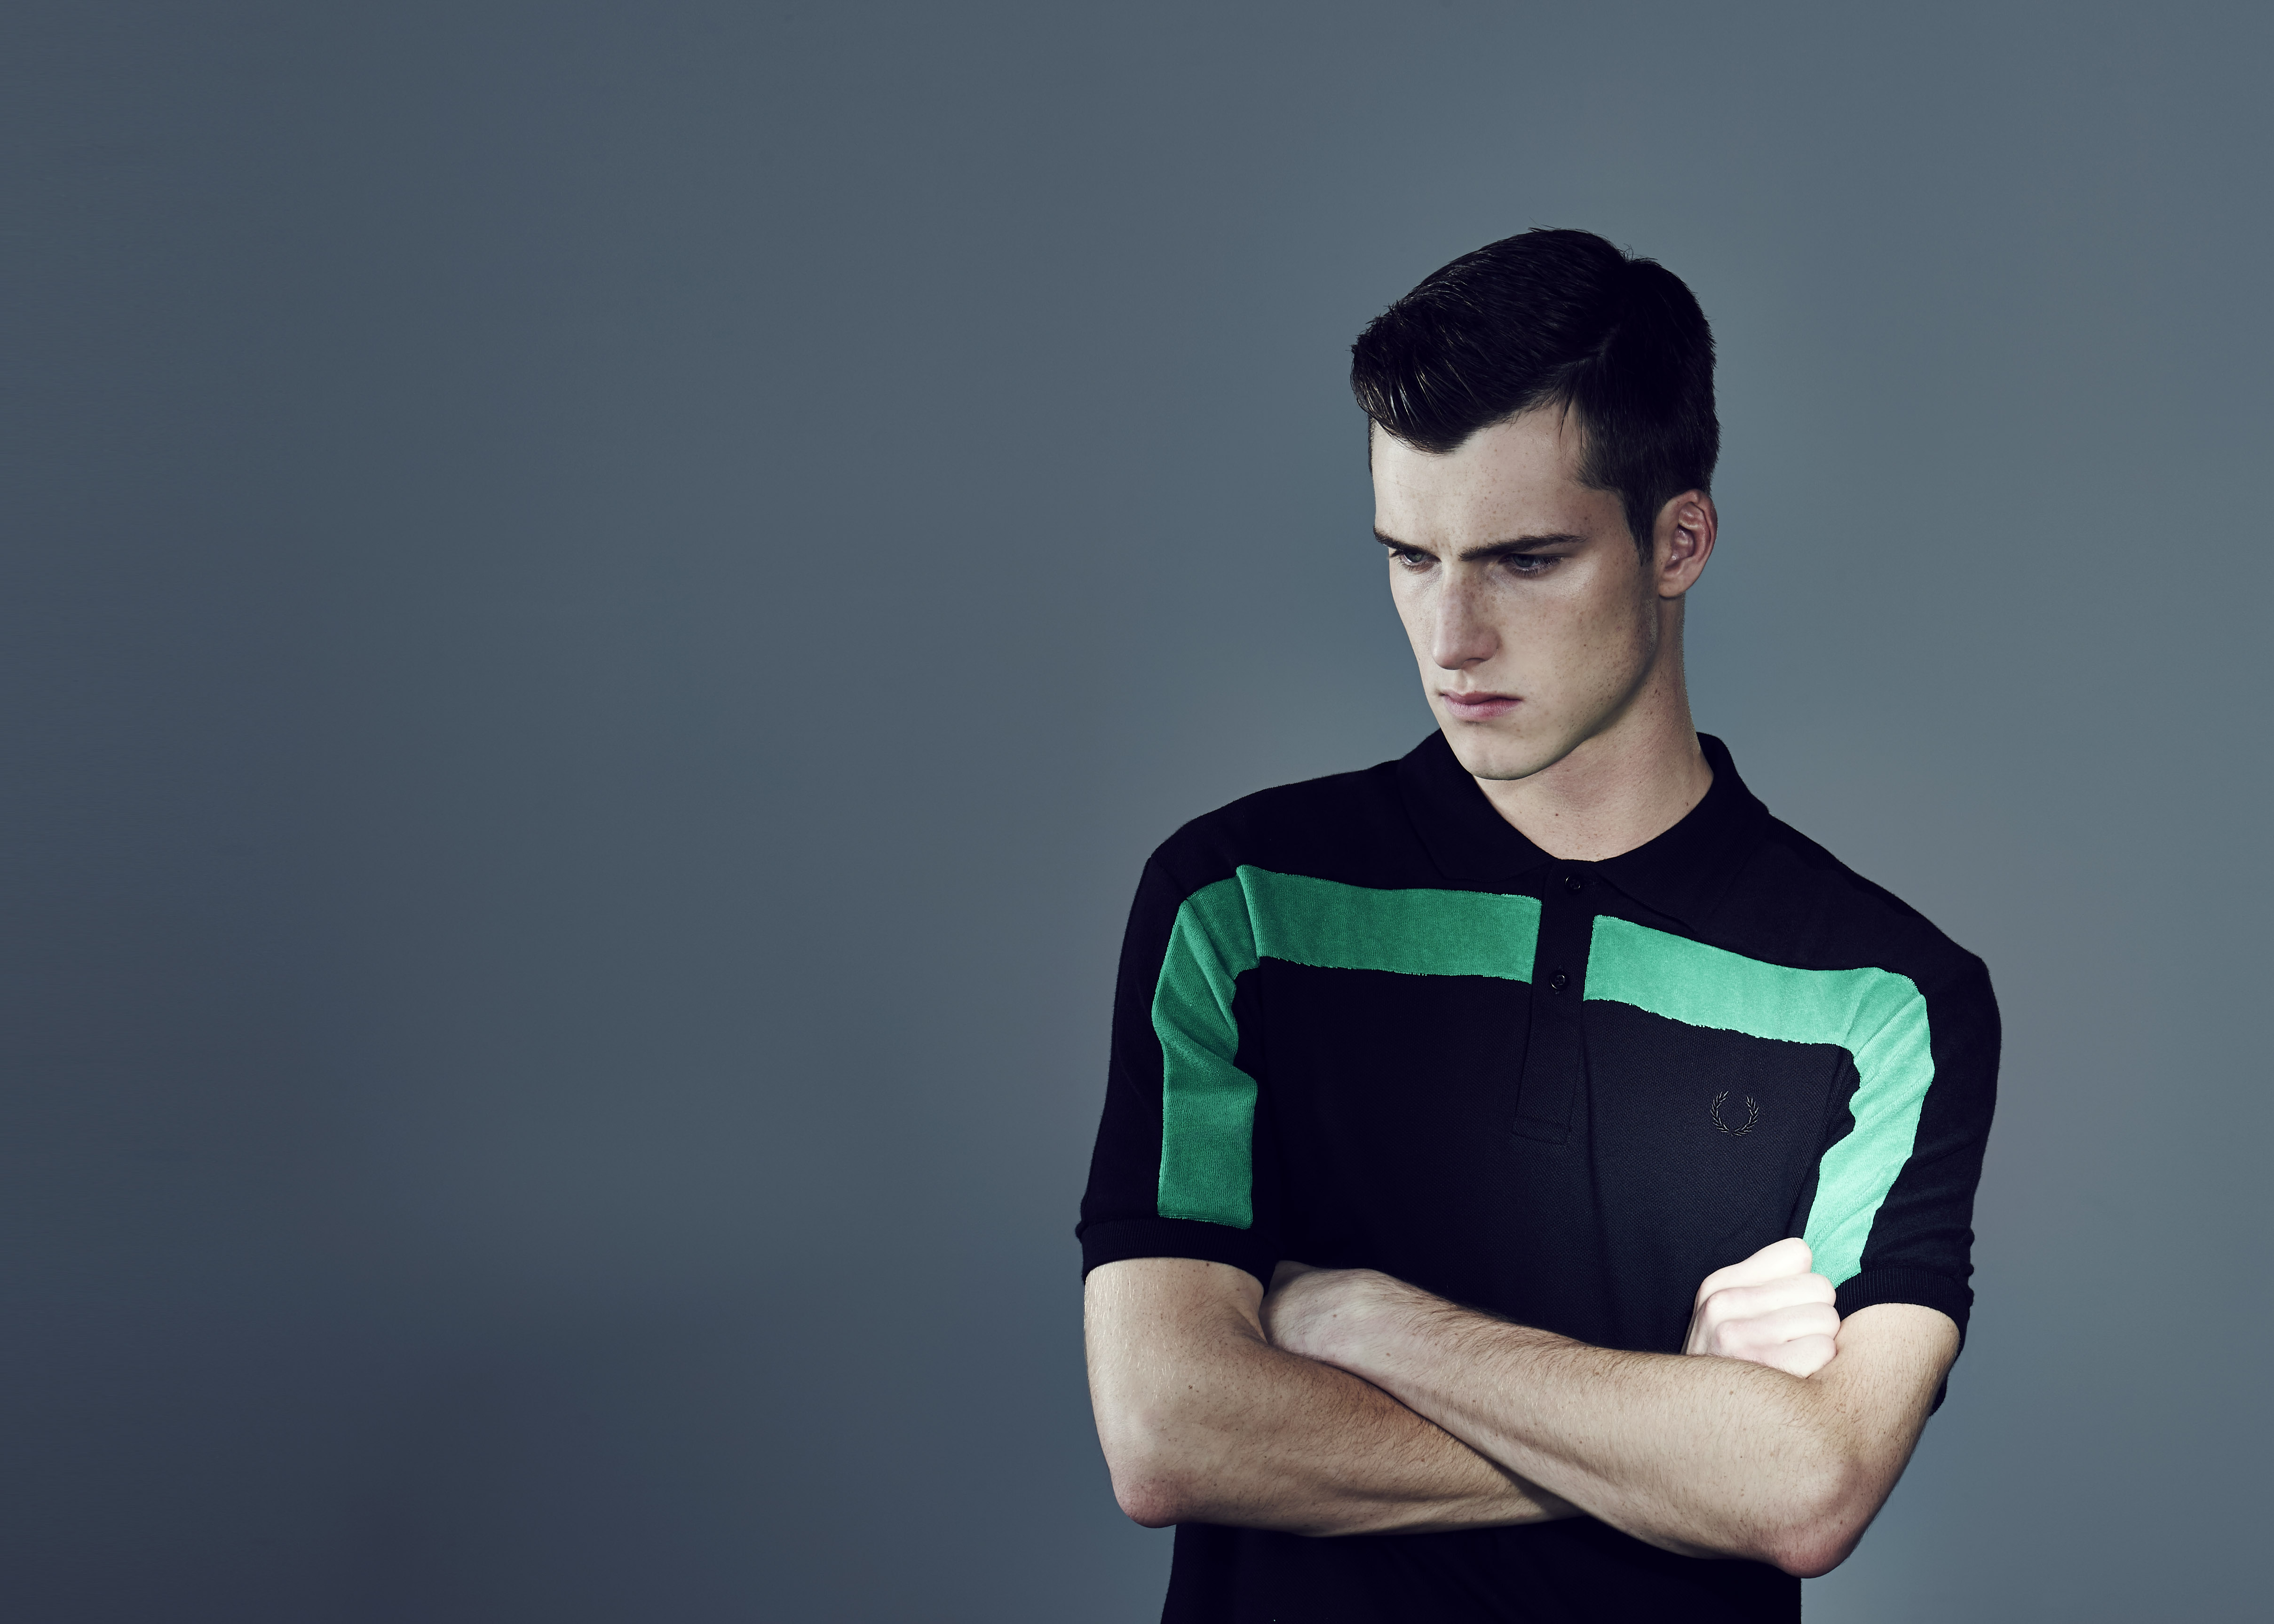 FRED_PERRY_TENNIS_06_069 1